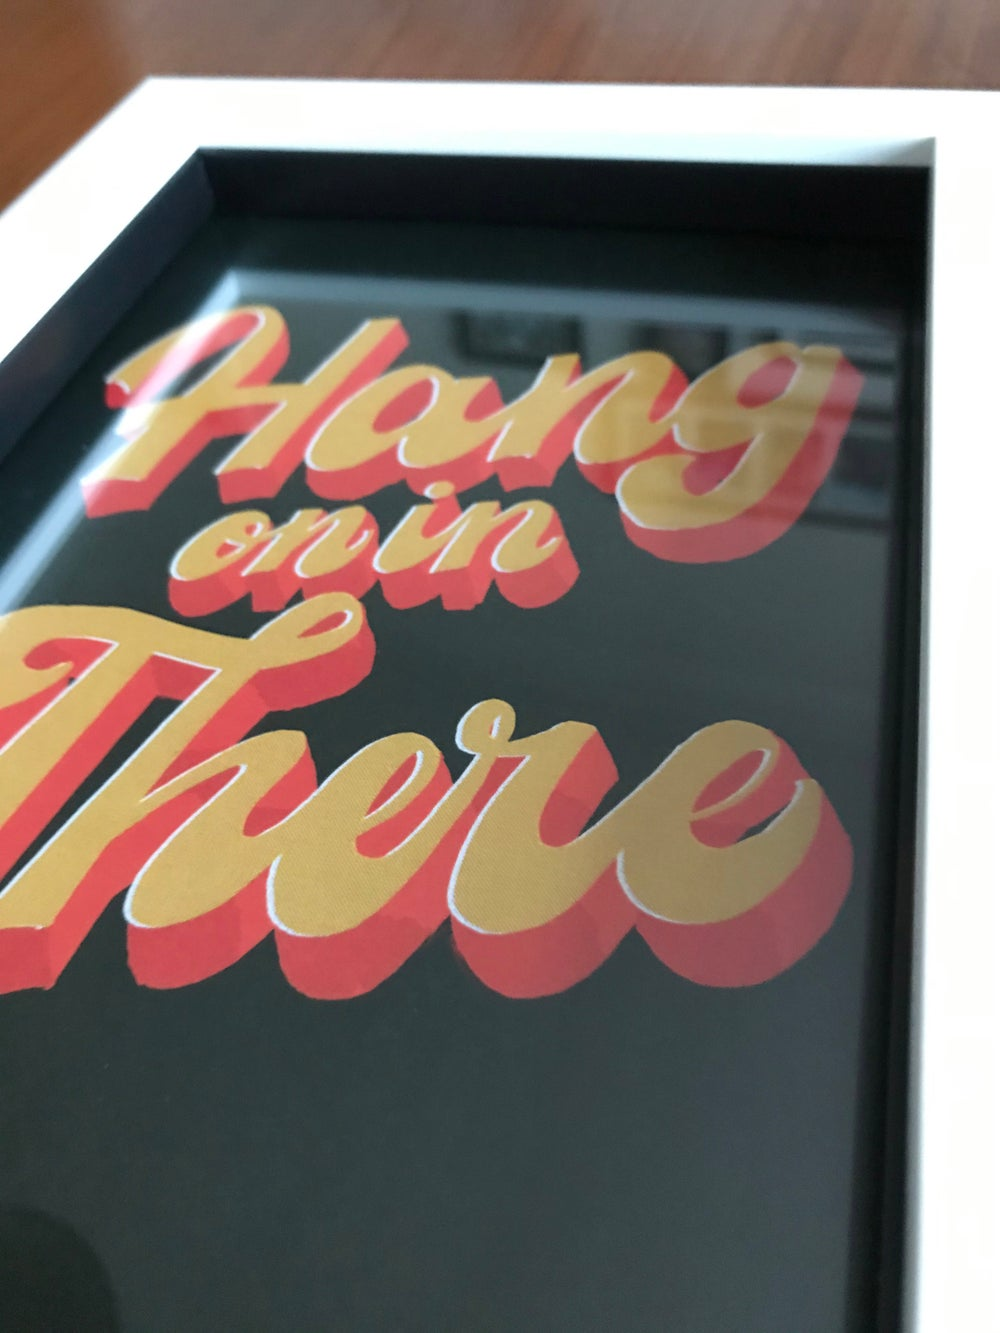 Hang on in there - A5 print